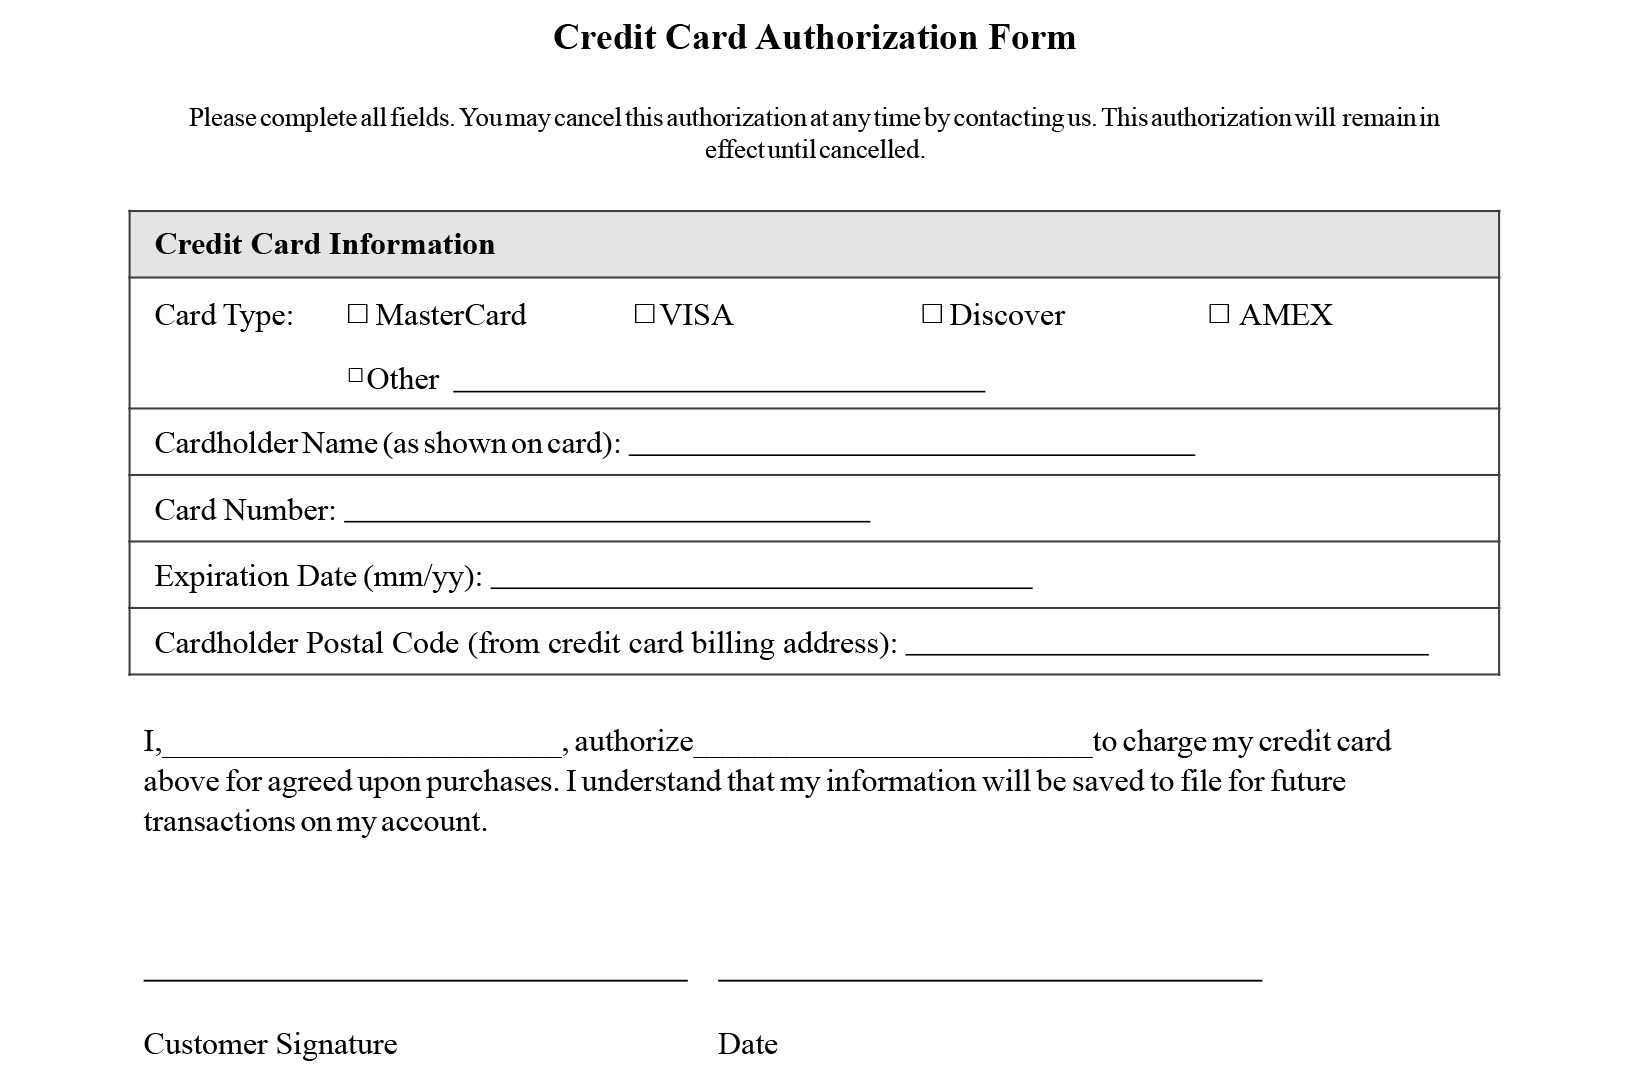 Credit Card On File Authorization Form Template - Oflu.bntl With Regard To Credit Card Billing Authorization Form Template